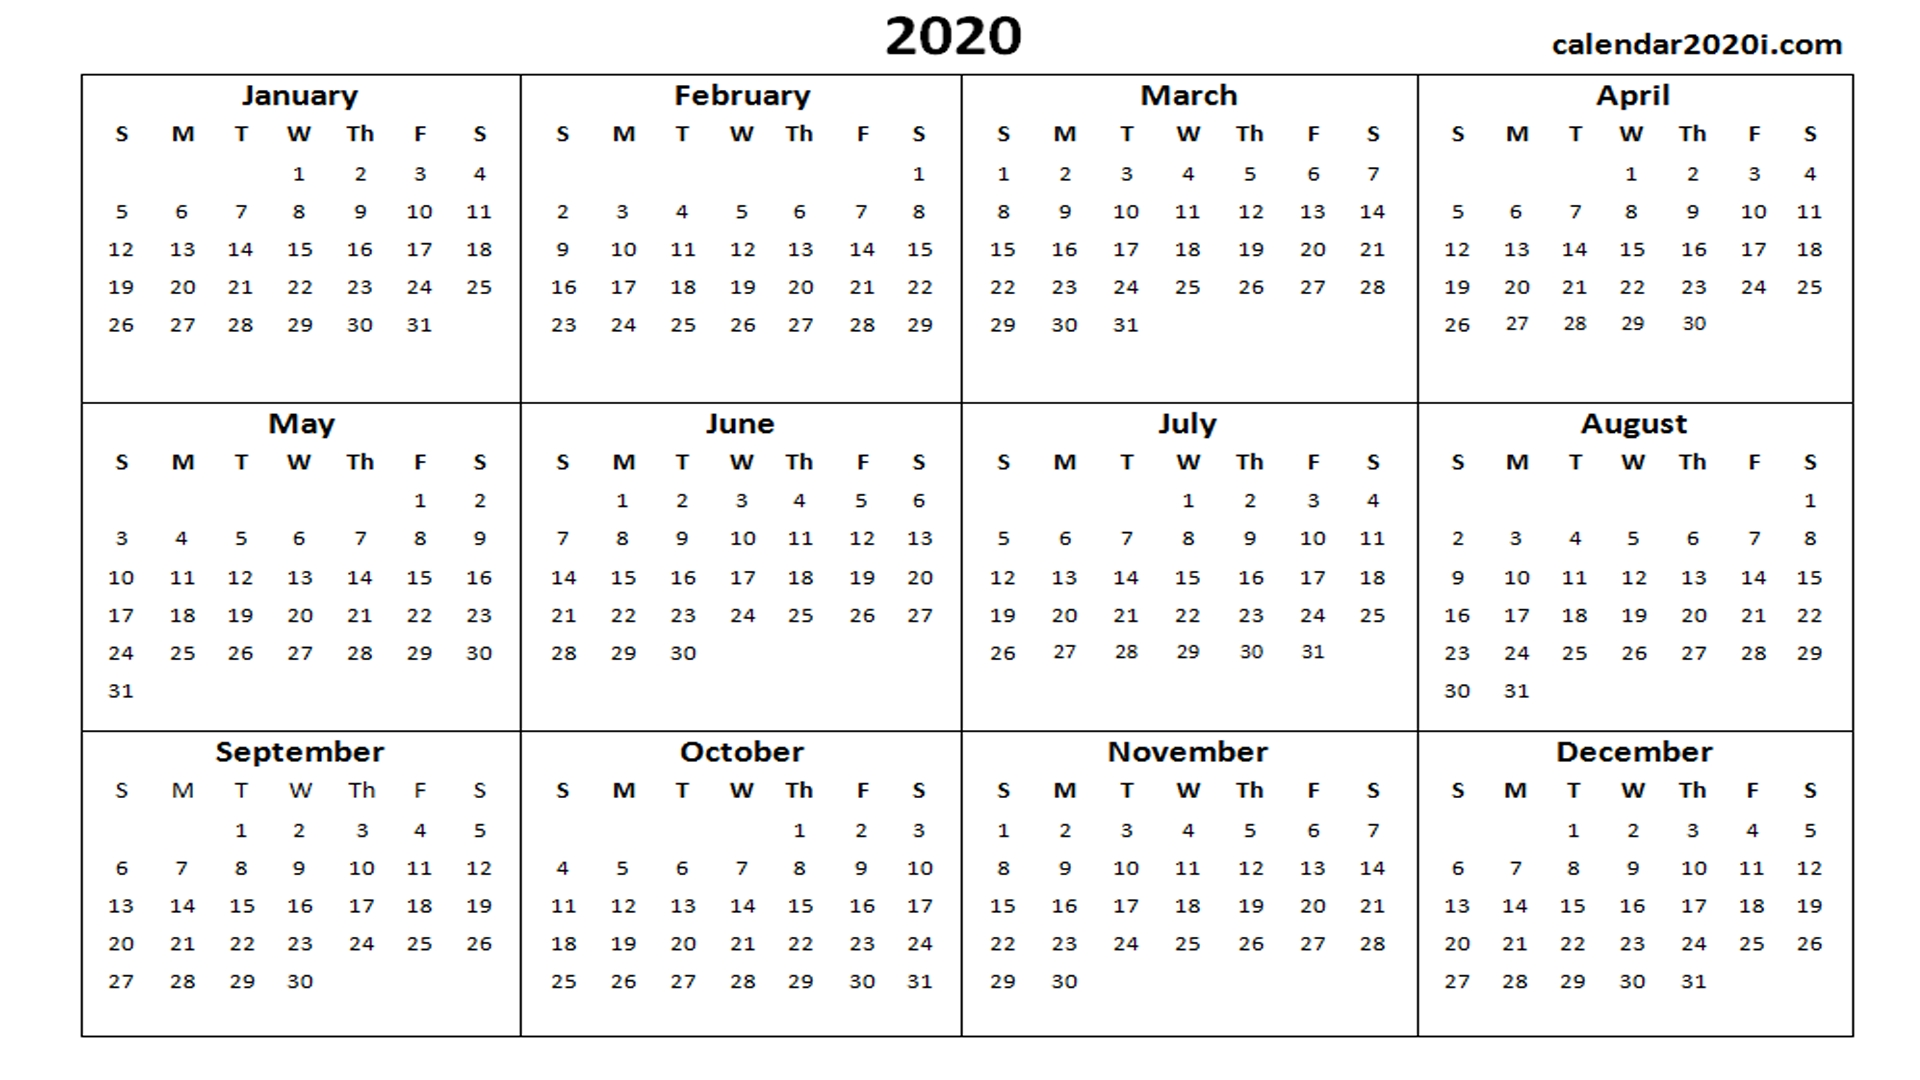 2020 Calendar Printable Template Holidays, Word, Excel, Pdf throughout Print Free Calendars 2020Without Downloading